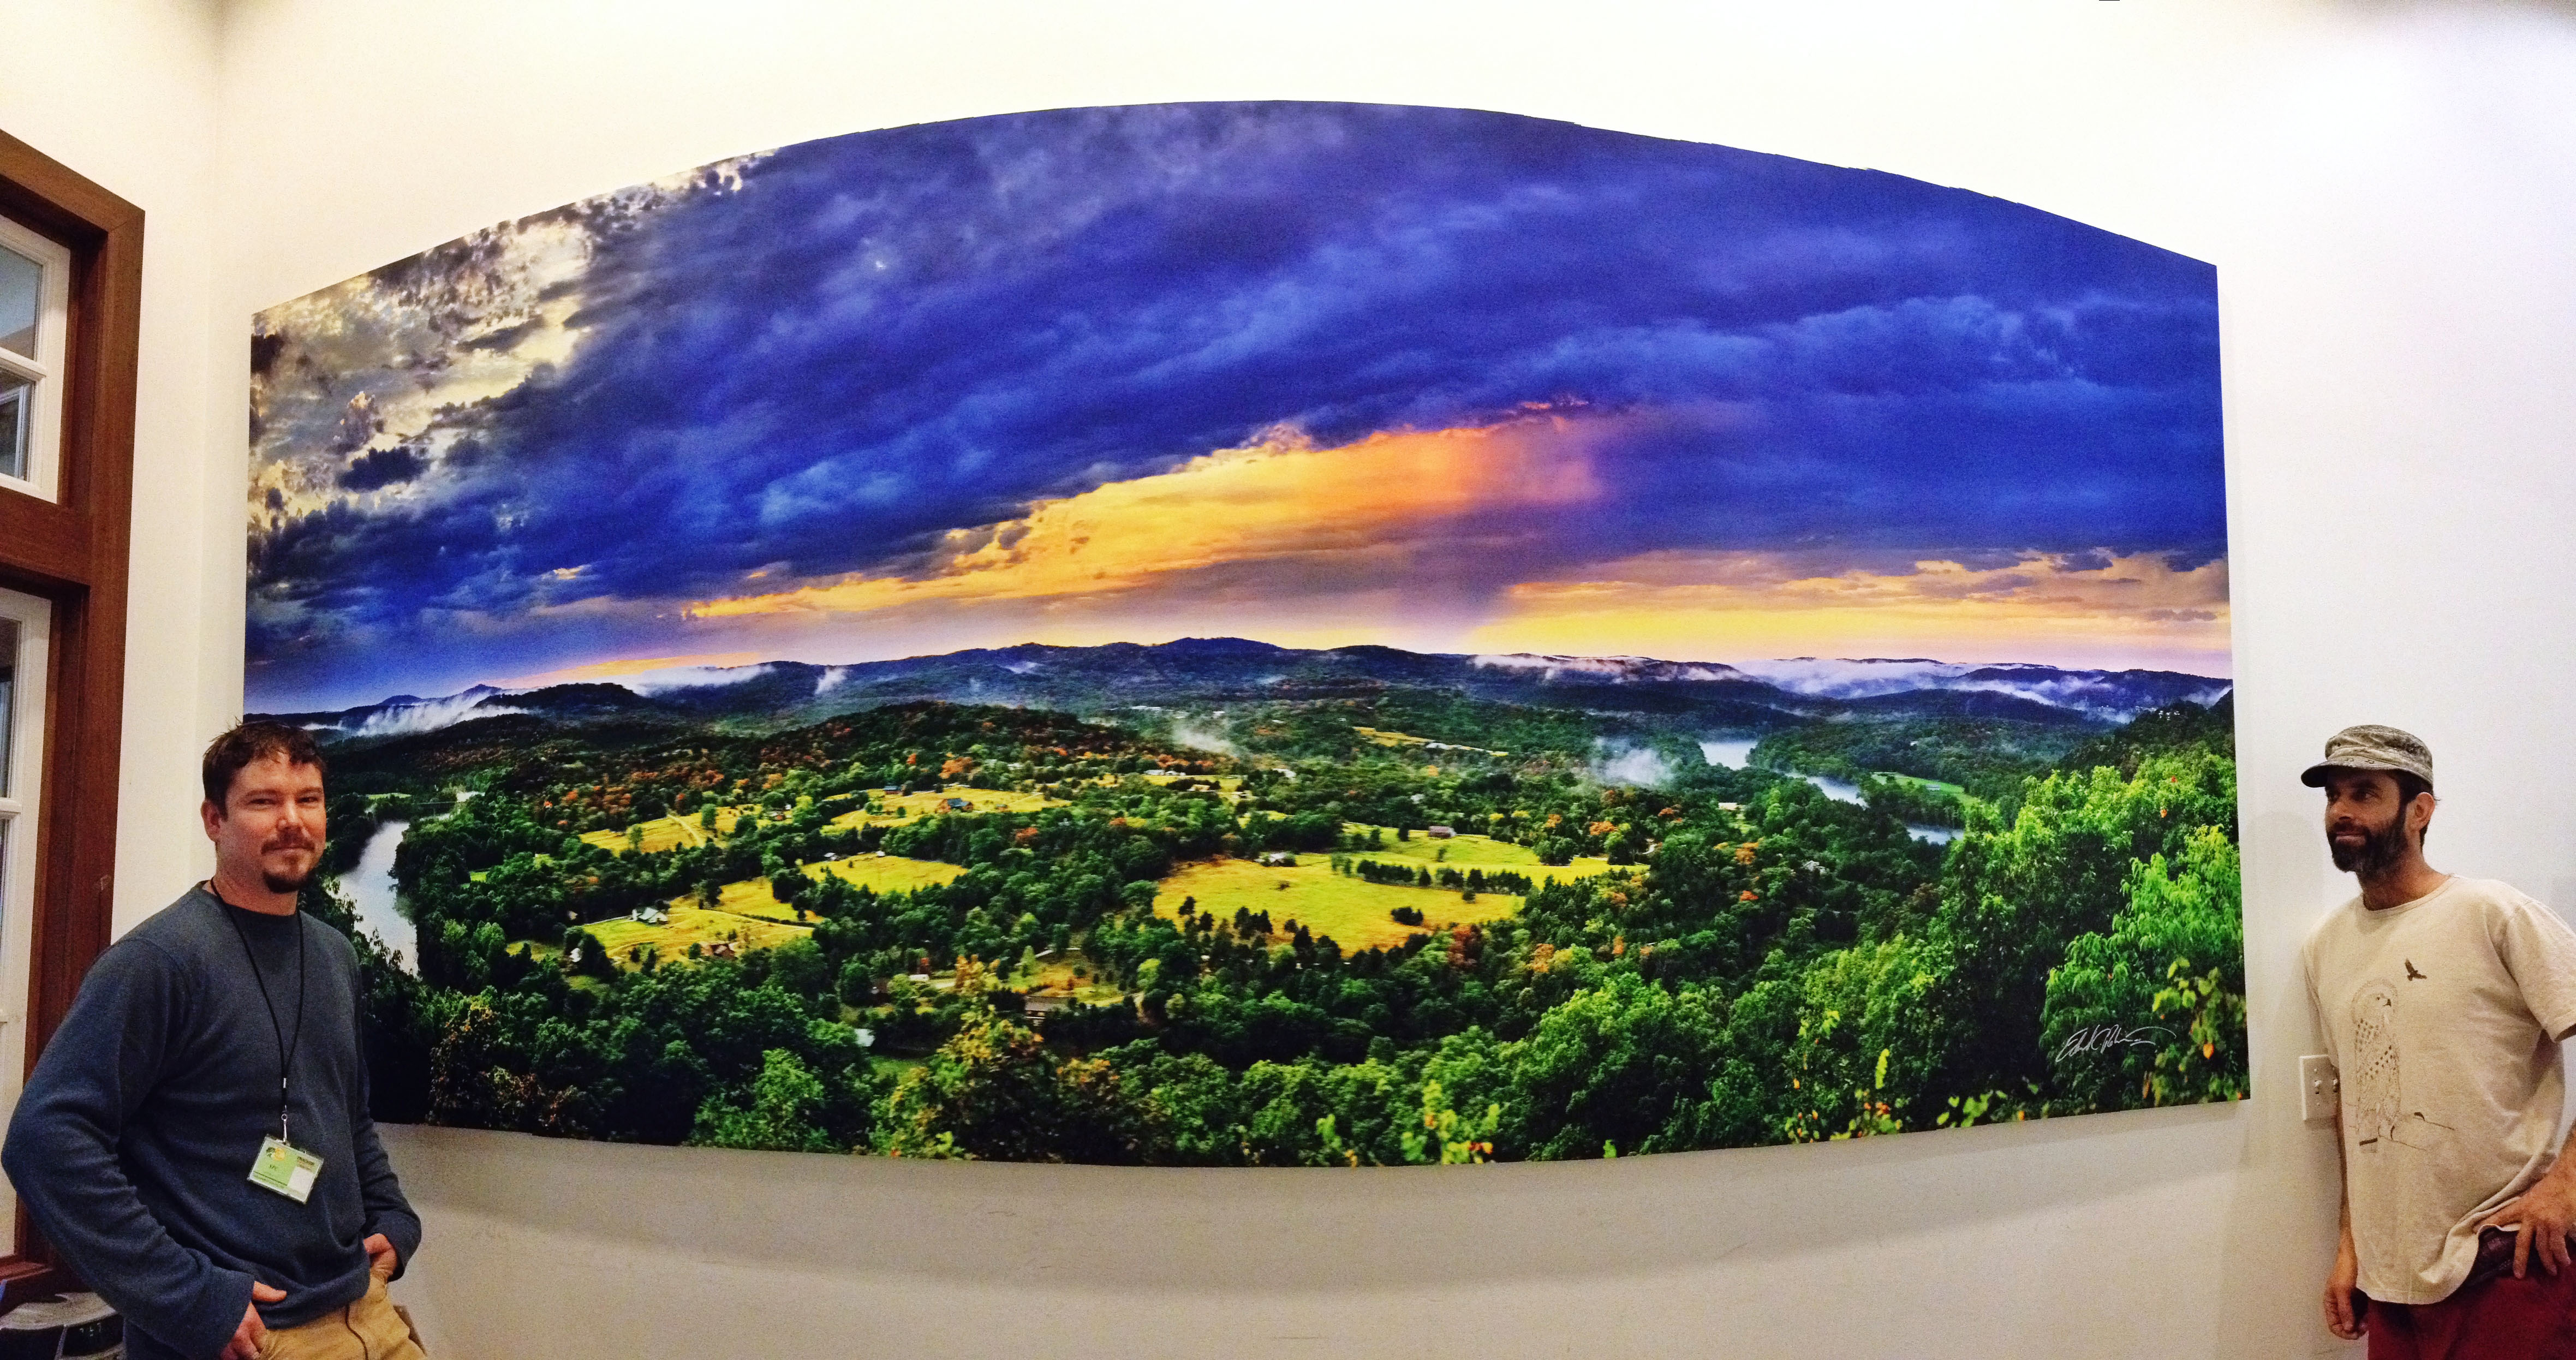 custom decor and the nature of wall murals lexjet blog gigapan image printed on canvas